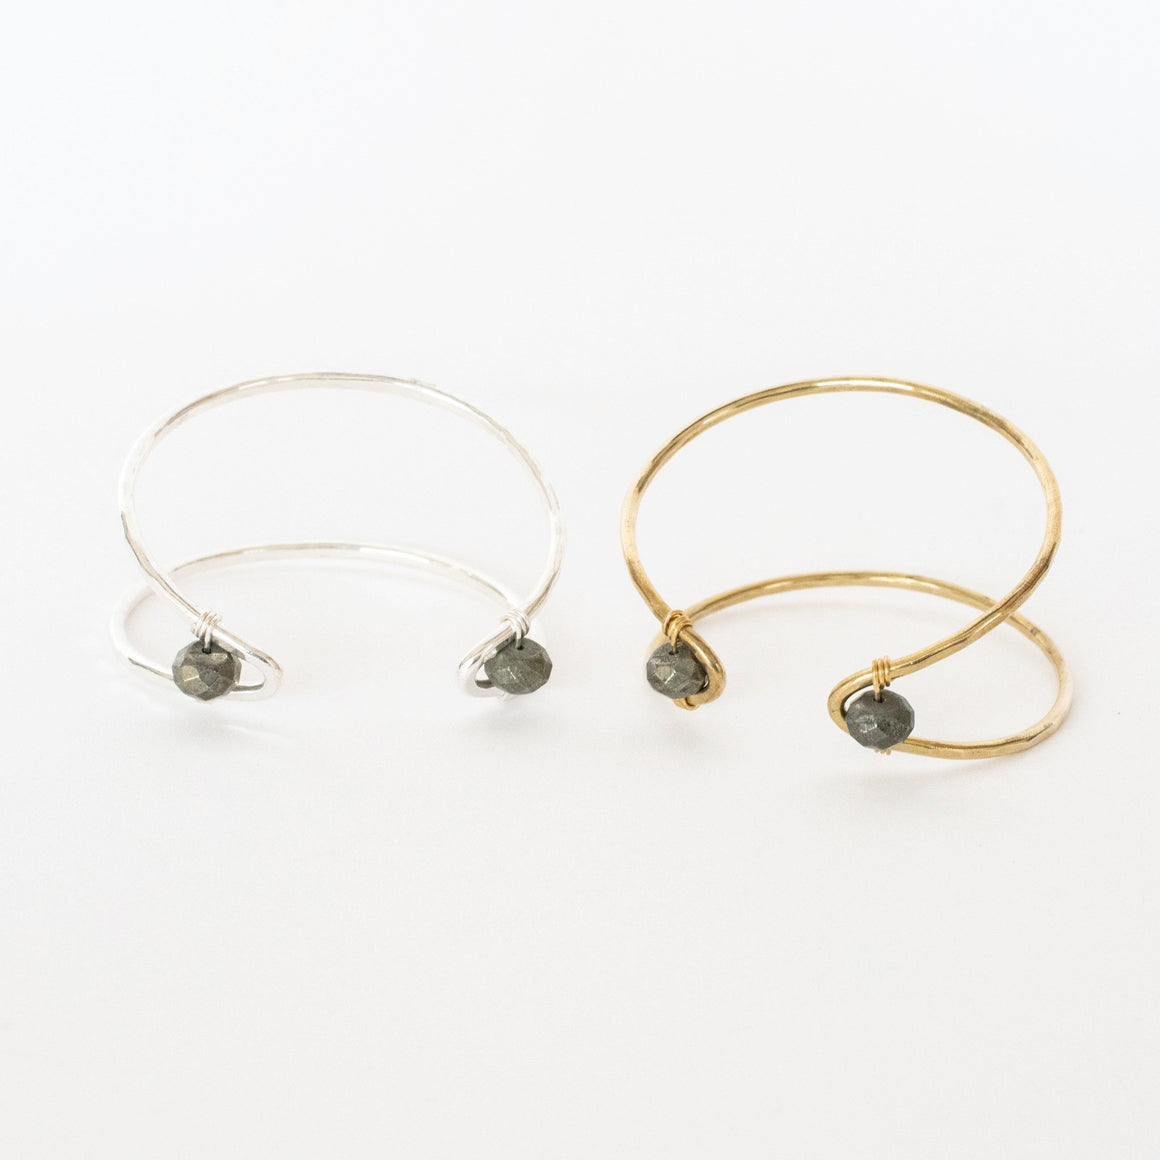 Marquise Cuff Bracelet with Pyrite Accent